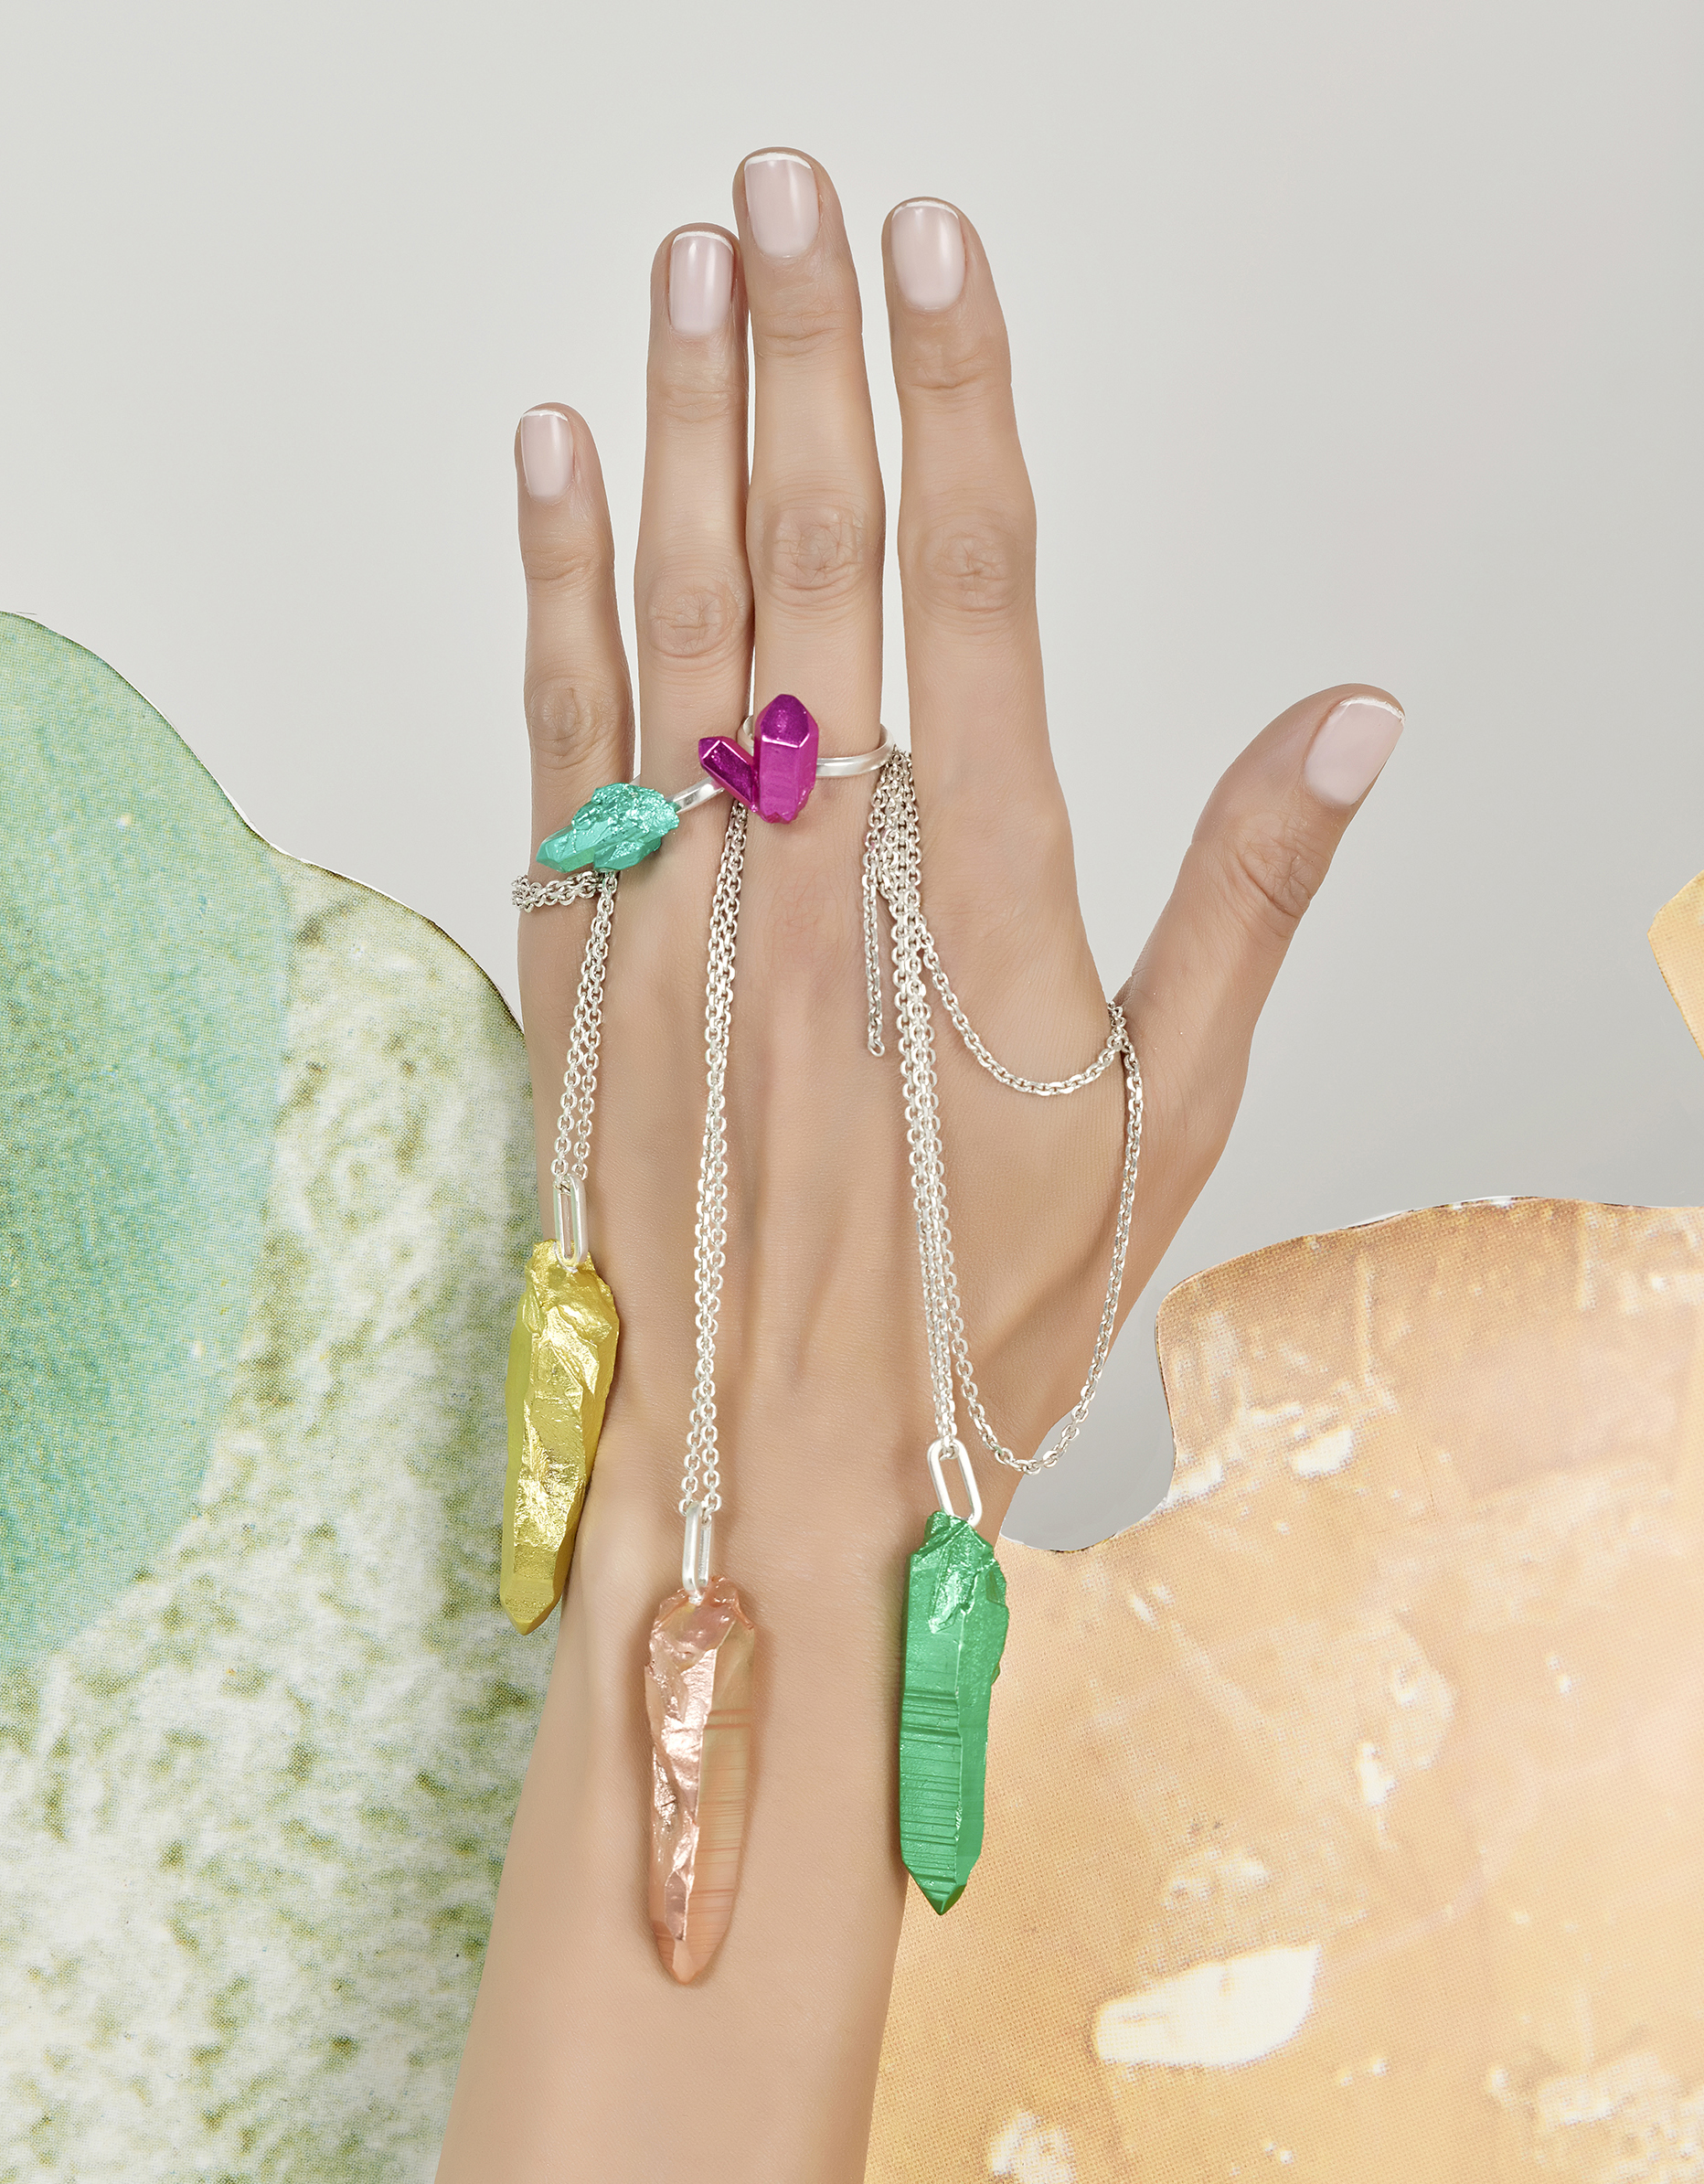 Jewellery on Hands, pendants and rings on model hand with creative still life backgrounds shot in london studio